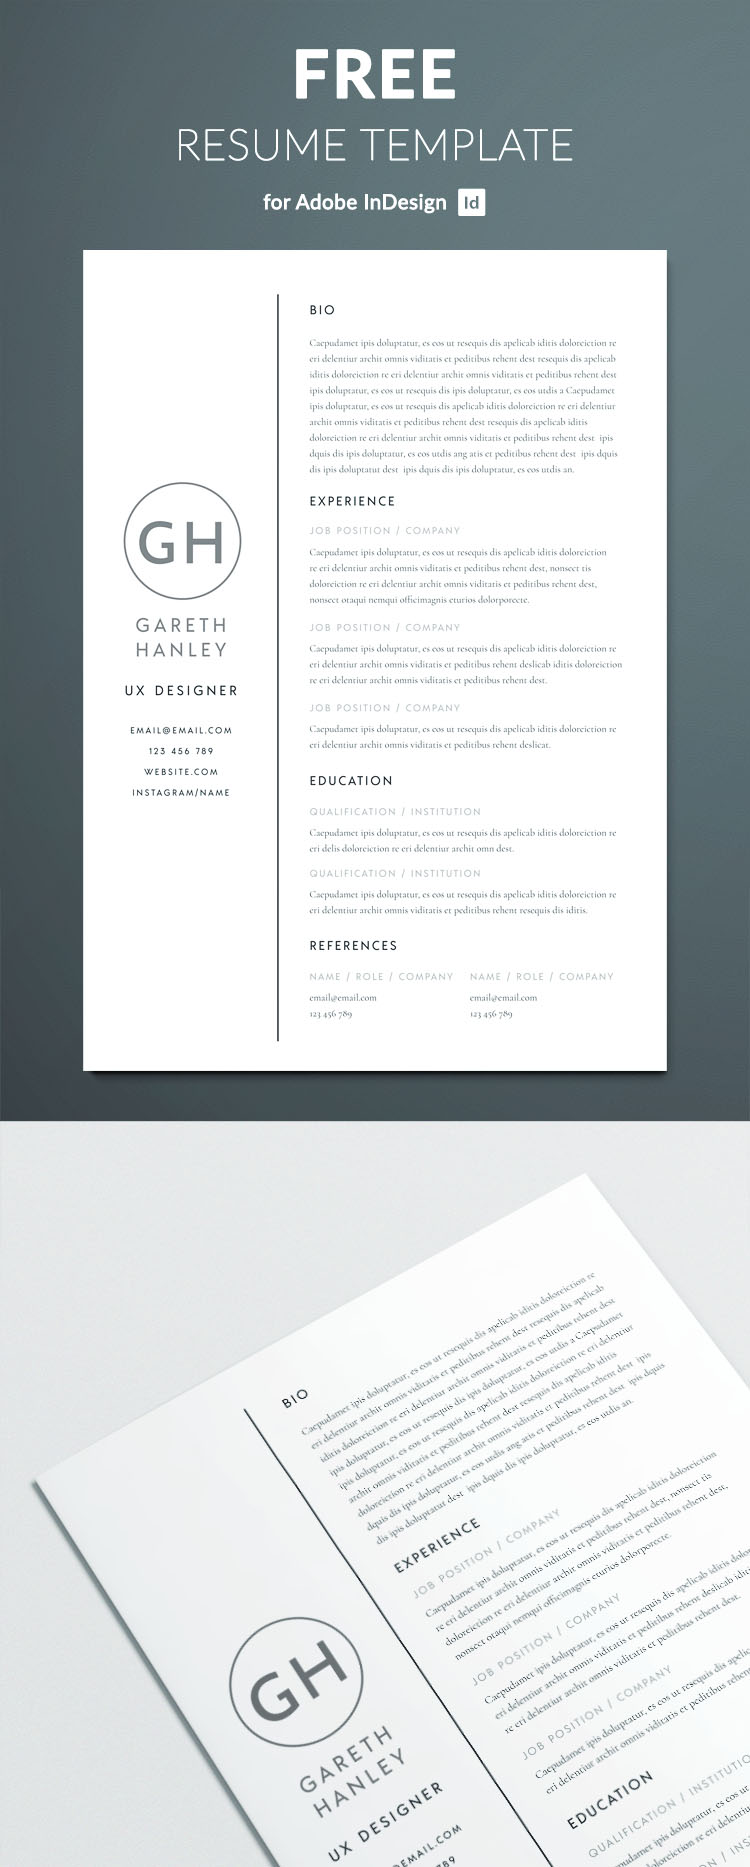 the perfect basic resume template free download. Black Bedroom Furniture Sets. Home Design Ideas